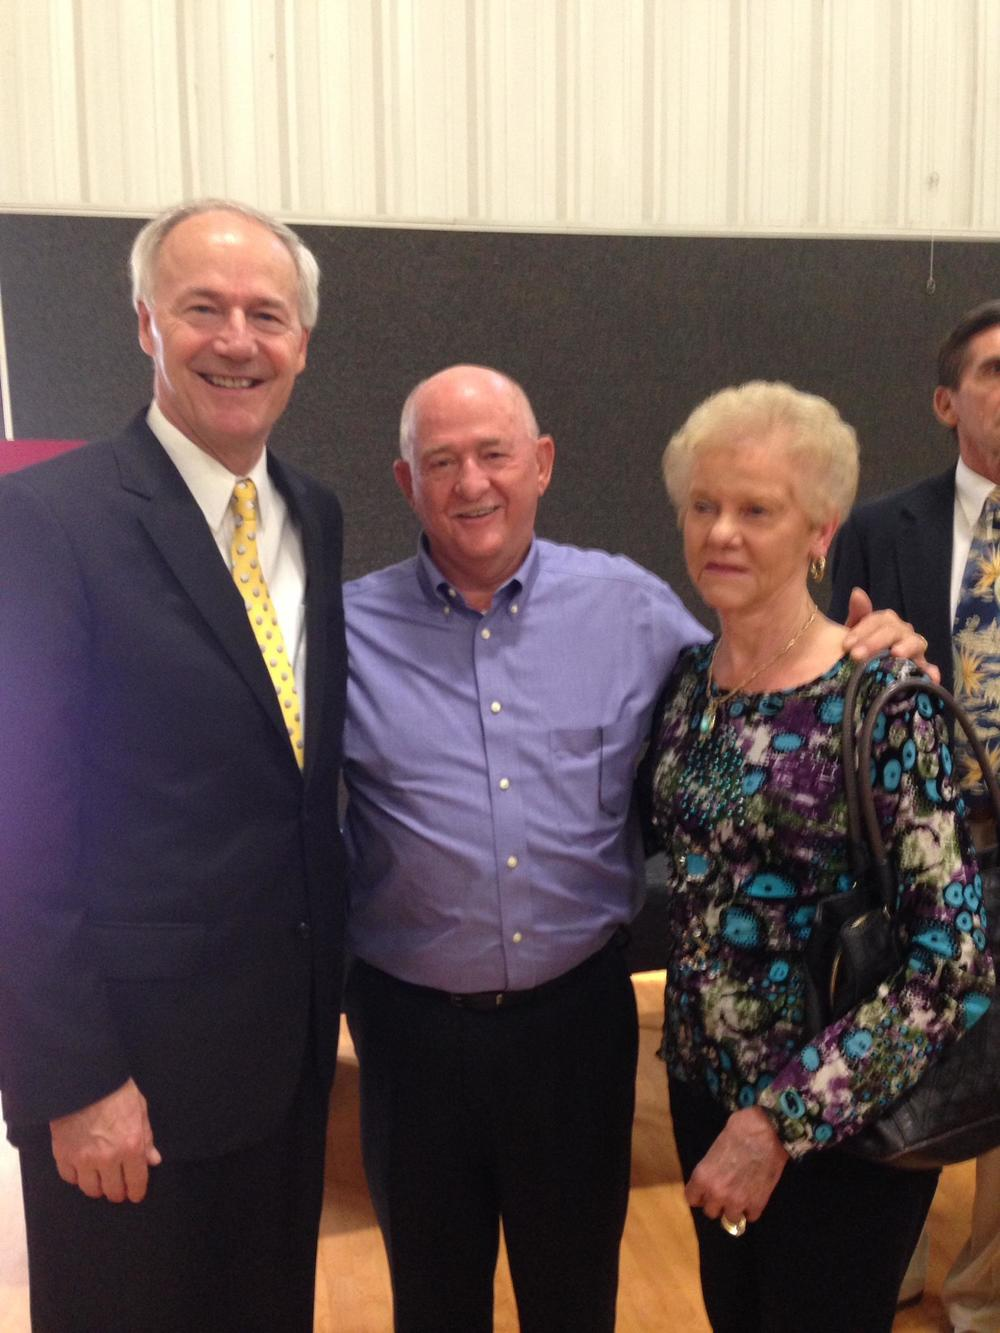 Arkansas Governor Asa Hutchinson with family of P.E.A.R.L. founder Karen Slater at Drug Court graduation ceremony (May, 2015)